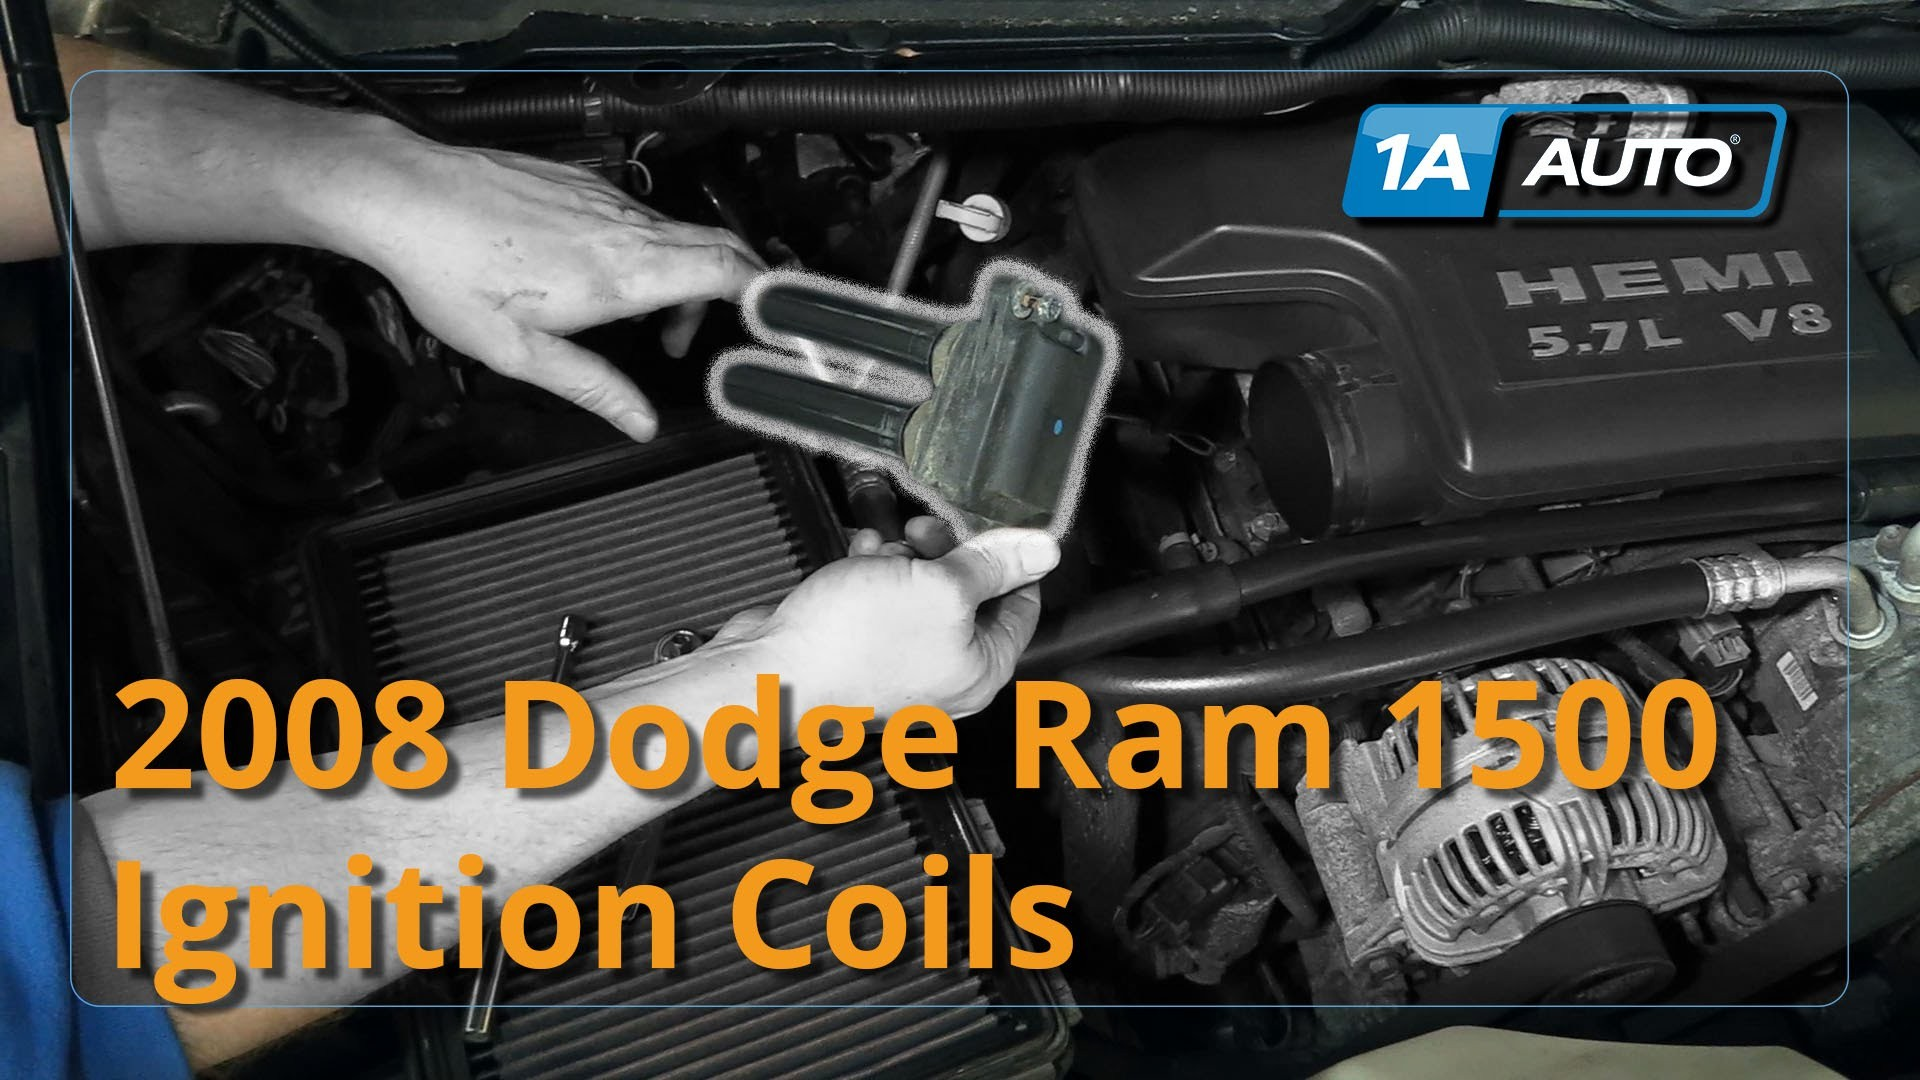 2005 Dodge Durango Engine Diagram How to Install Replace Ignition Coils Dodge Ram 1500 Hemi 5 7l Buy Of 2005 Dodge Durango Engine Diagram